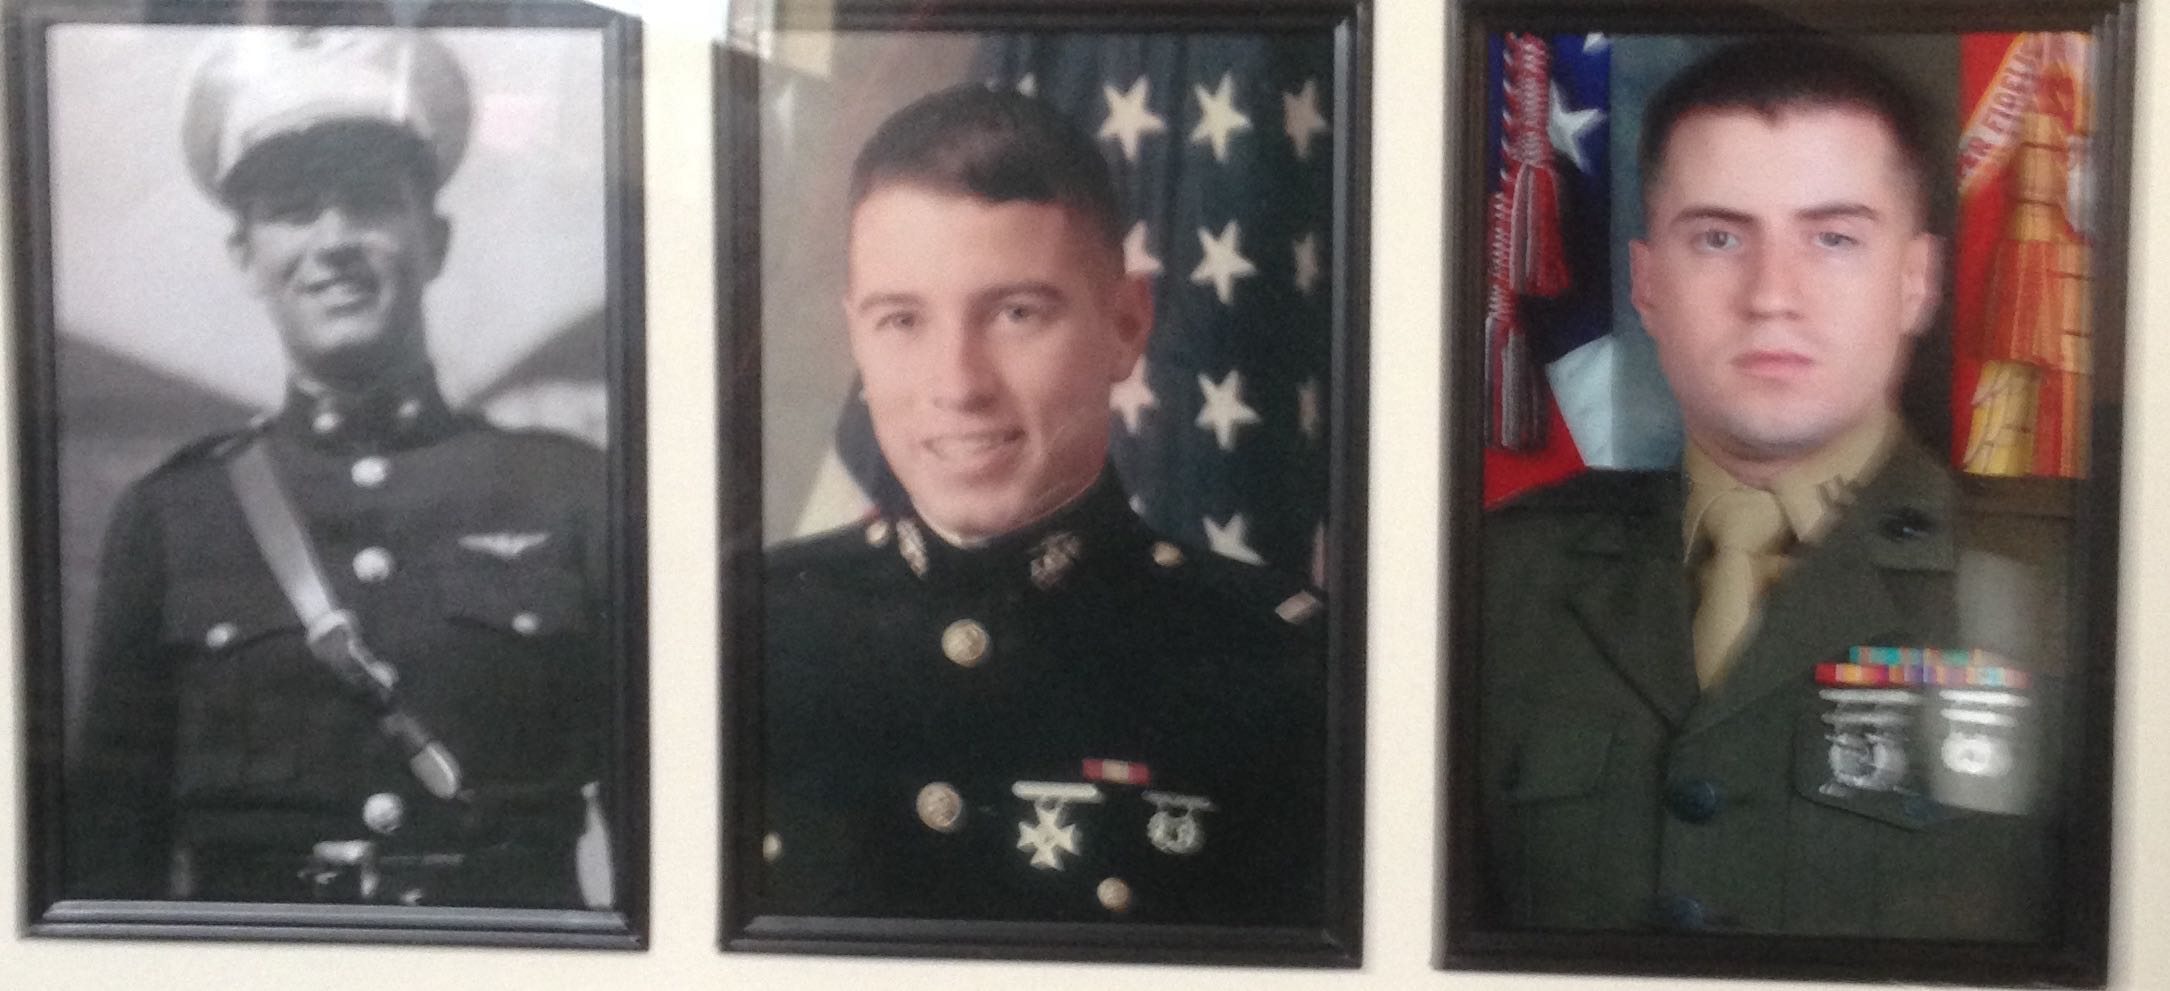 The O'Sullivans: three generations dedicated to American service